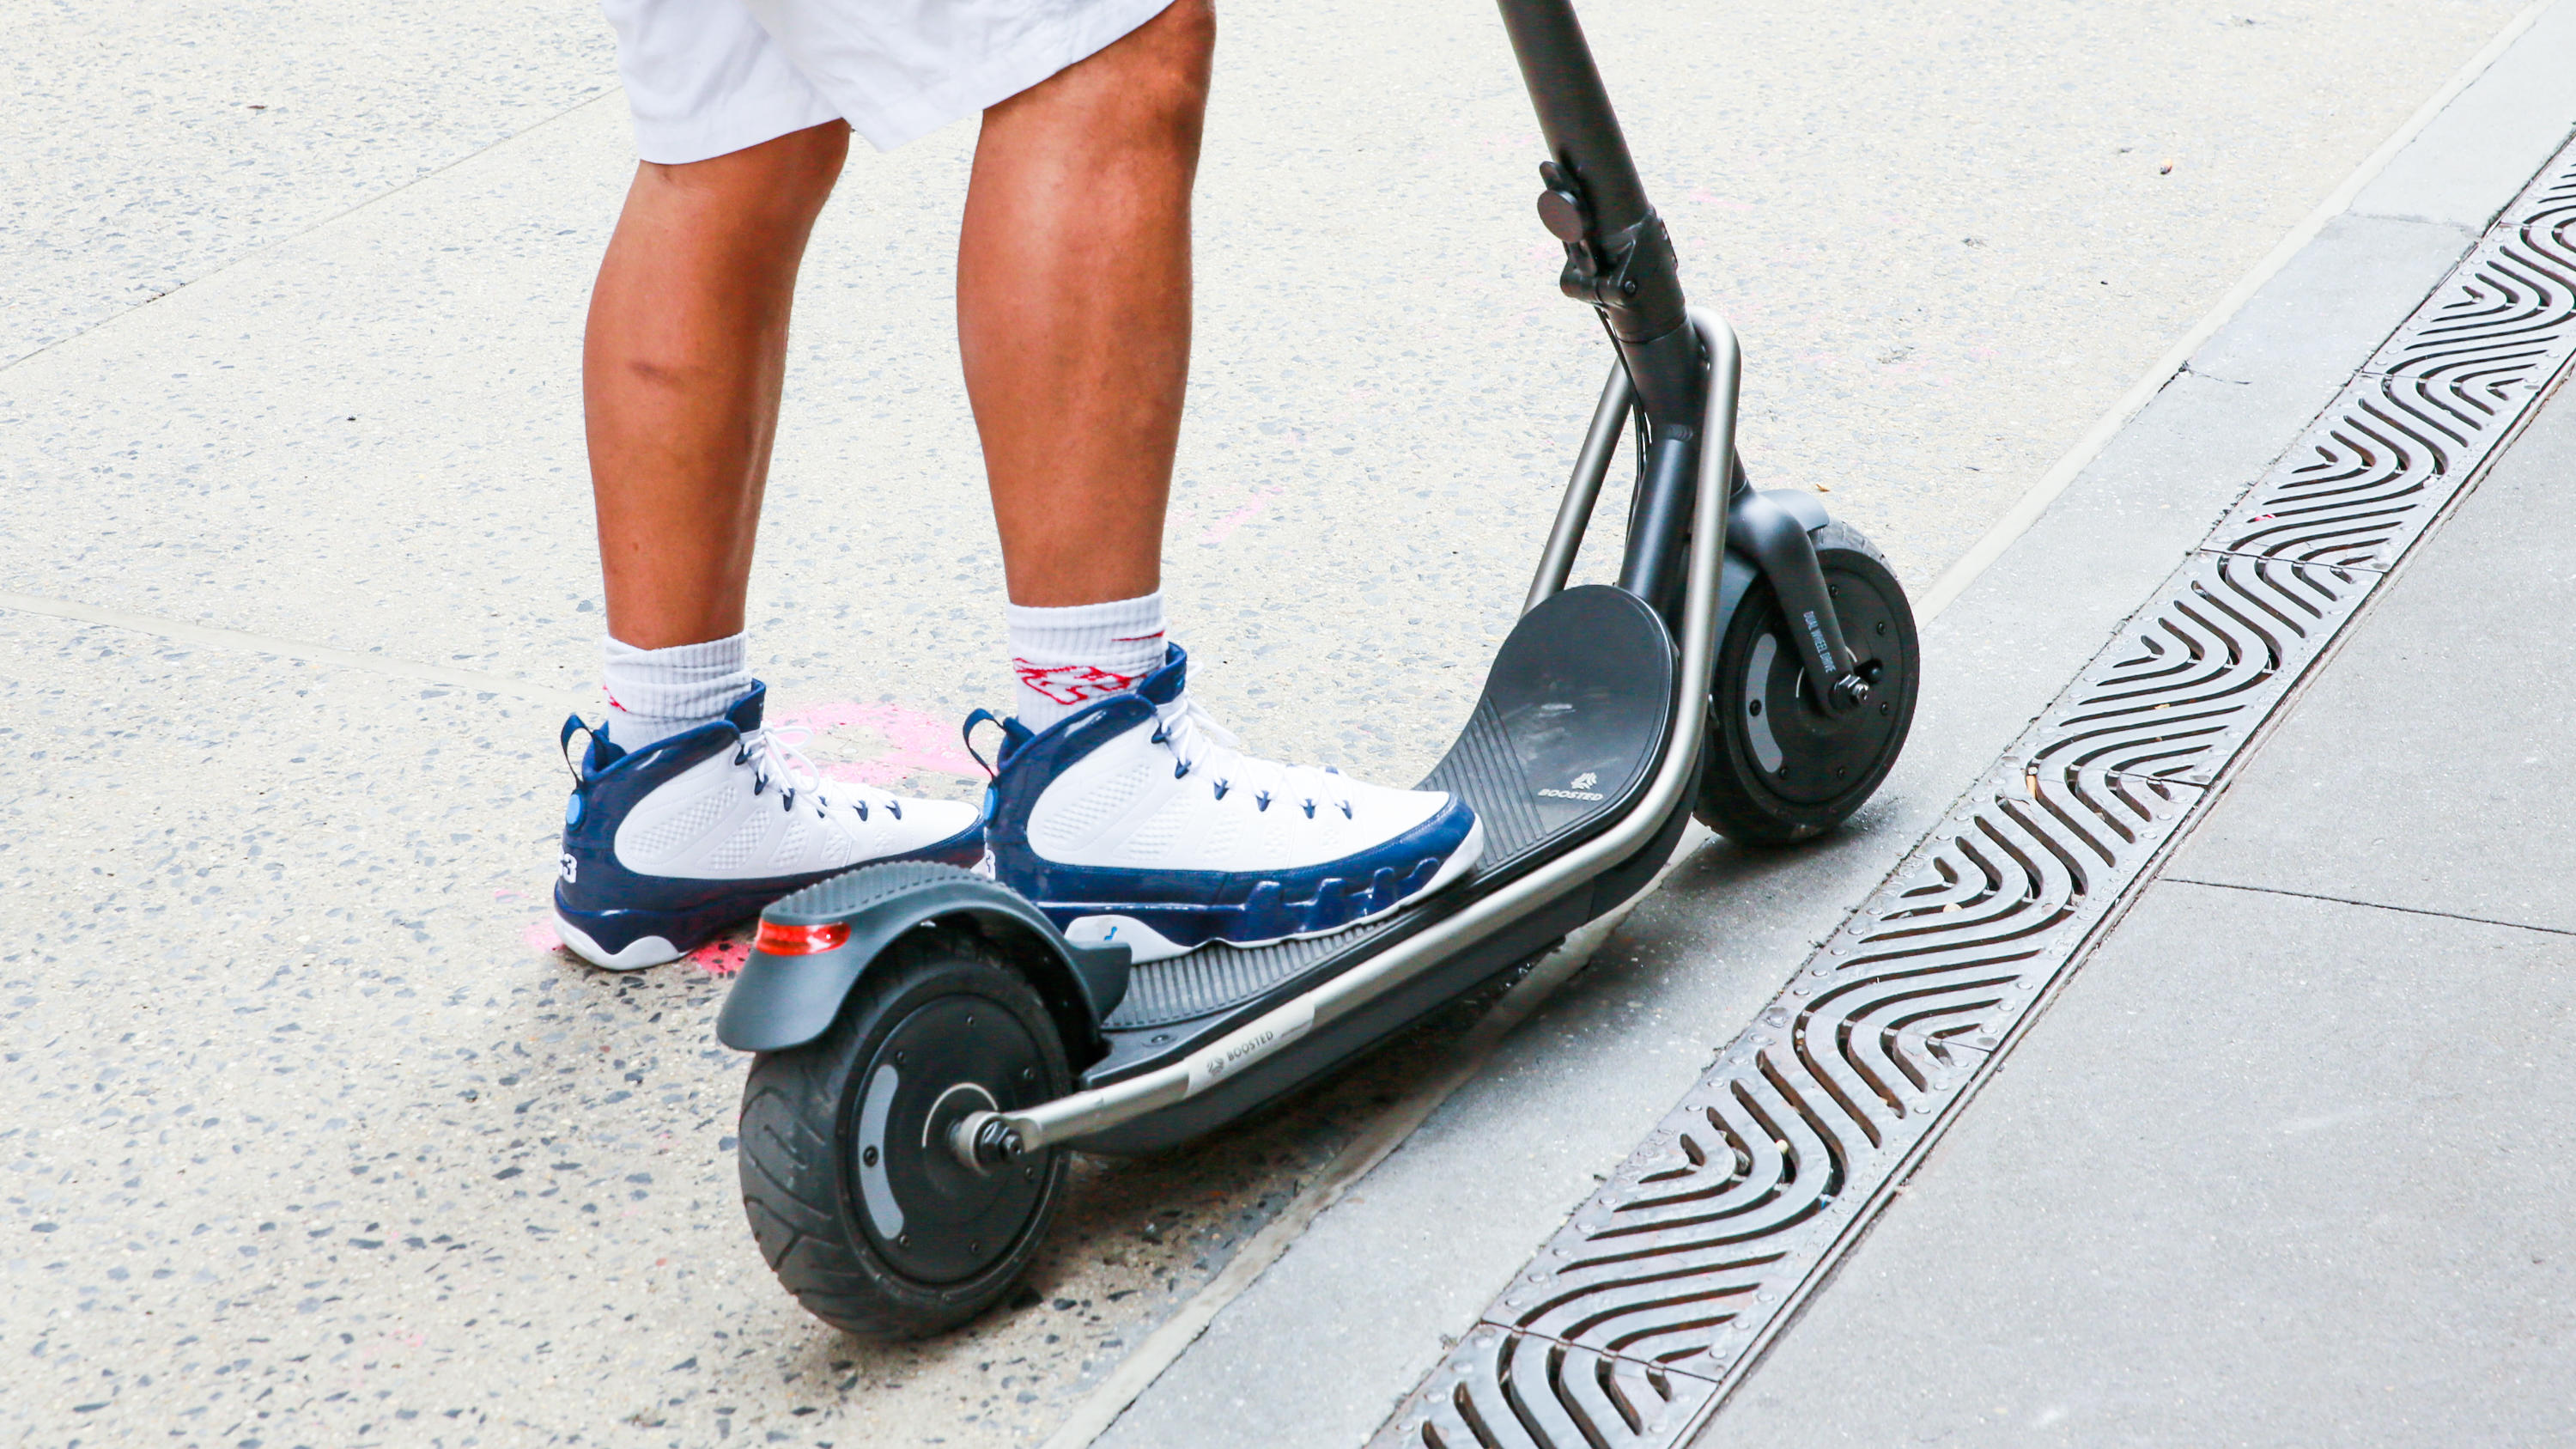 17 boosted rev | Best electric scooter for summer 2021 - Roadshow | The Paradise